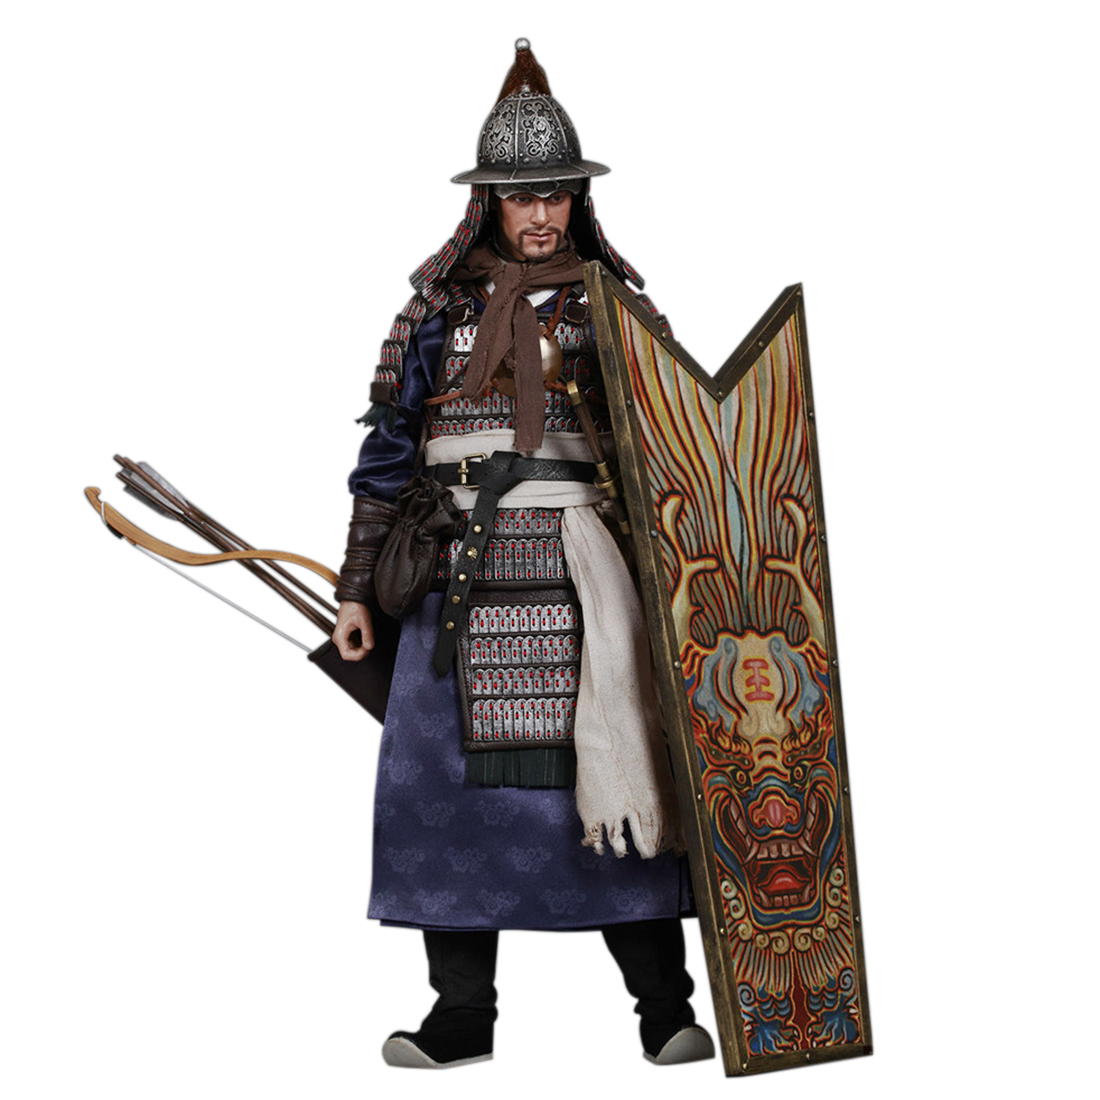 1/6 30cm High Ancient China Soldier Model Ming Dynasty Series Qi Army Sentry Action Model  Modelo De Soldado Hot Sale1/6 30cm High Ancient China Soldier Model Ming Dynasty Series Qi Army Sentry Action Model  Modelo De Soldado Hot Sale